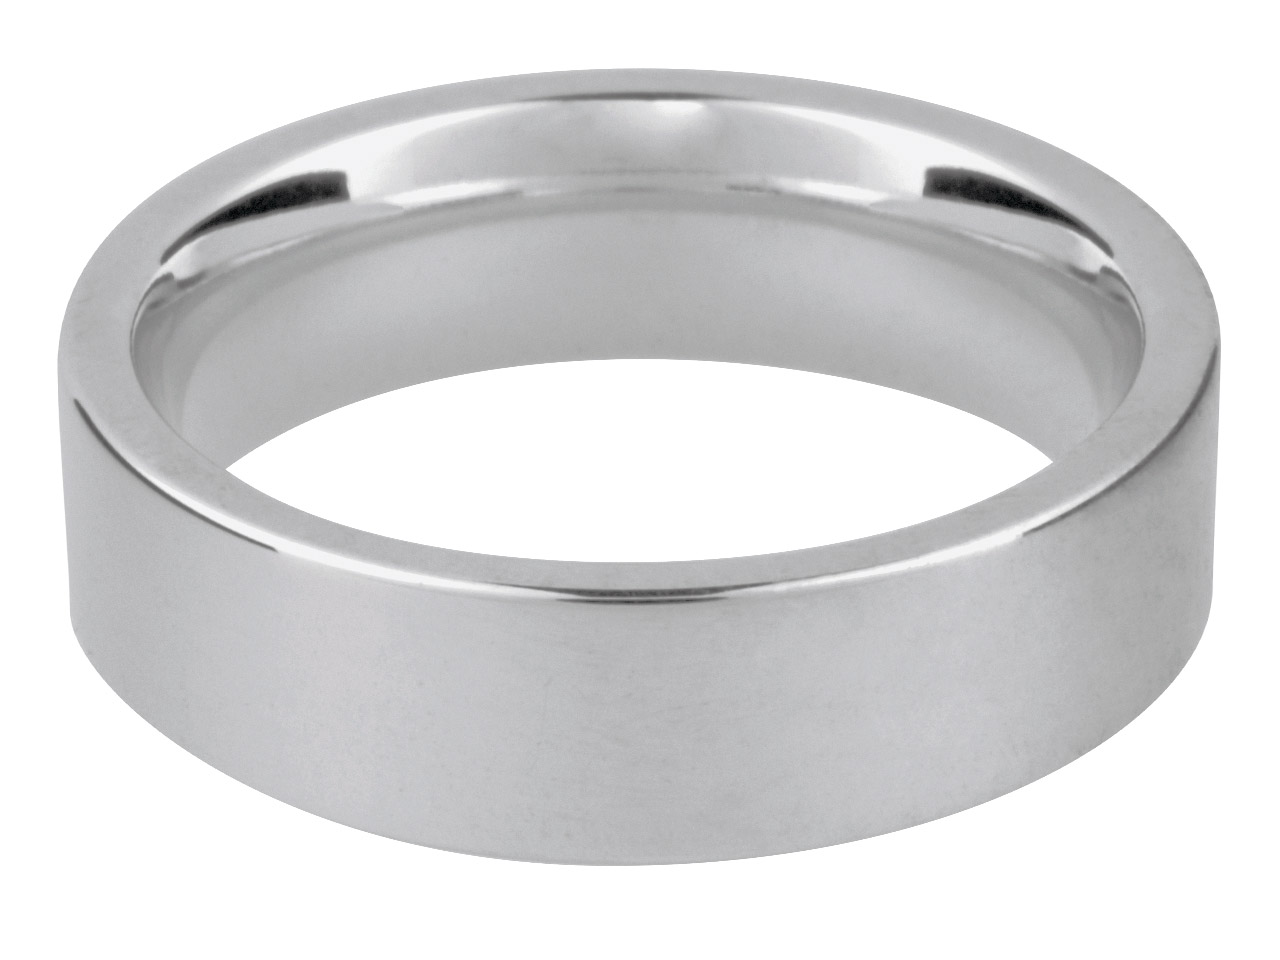 Palladium Easy Fit Wedding Ring    2.0mm K 1.9gms Medium Weight       Hallmarked Wall Thickness 1.41mm